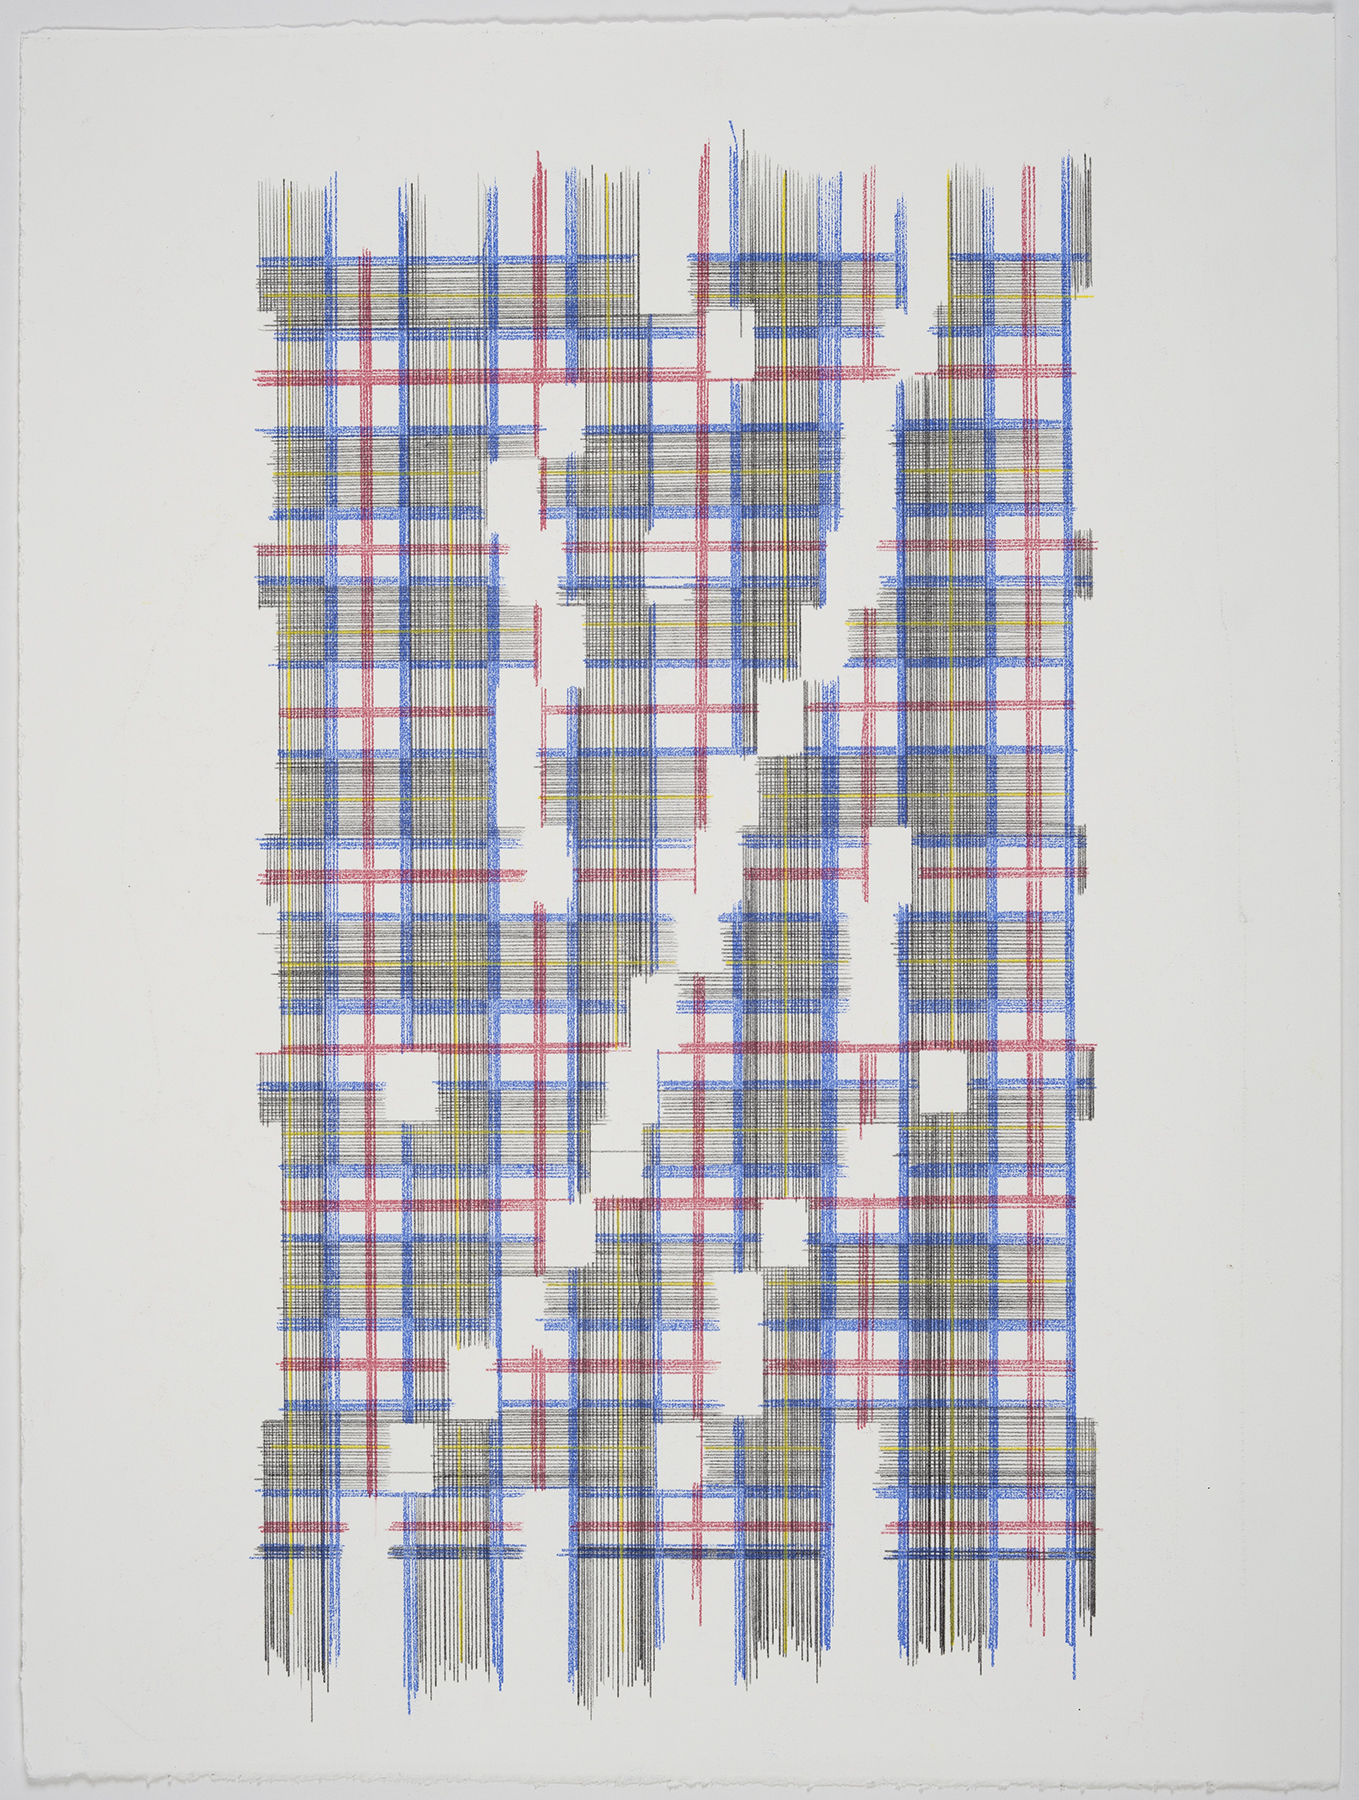 Up The Energy Scale (Plaid), 2018 Transfer pigment on paper 23x17.5 in (framed)